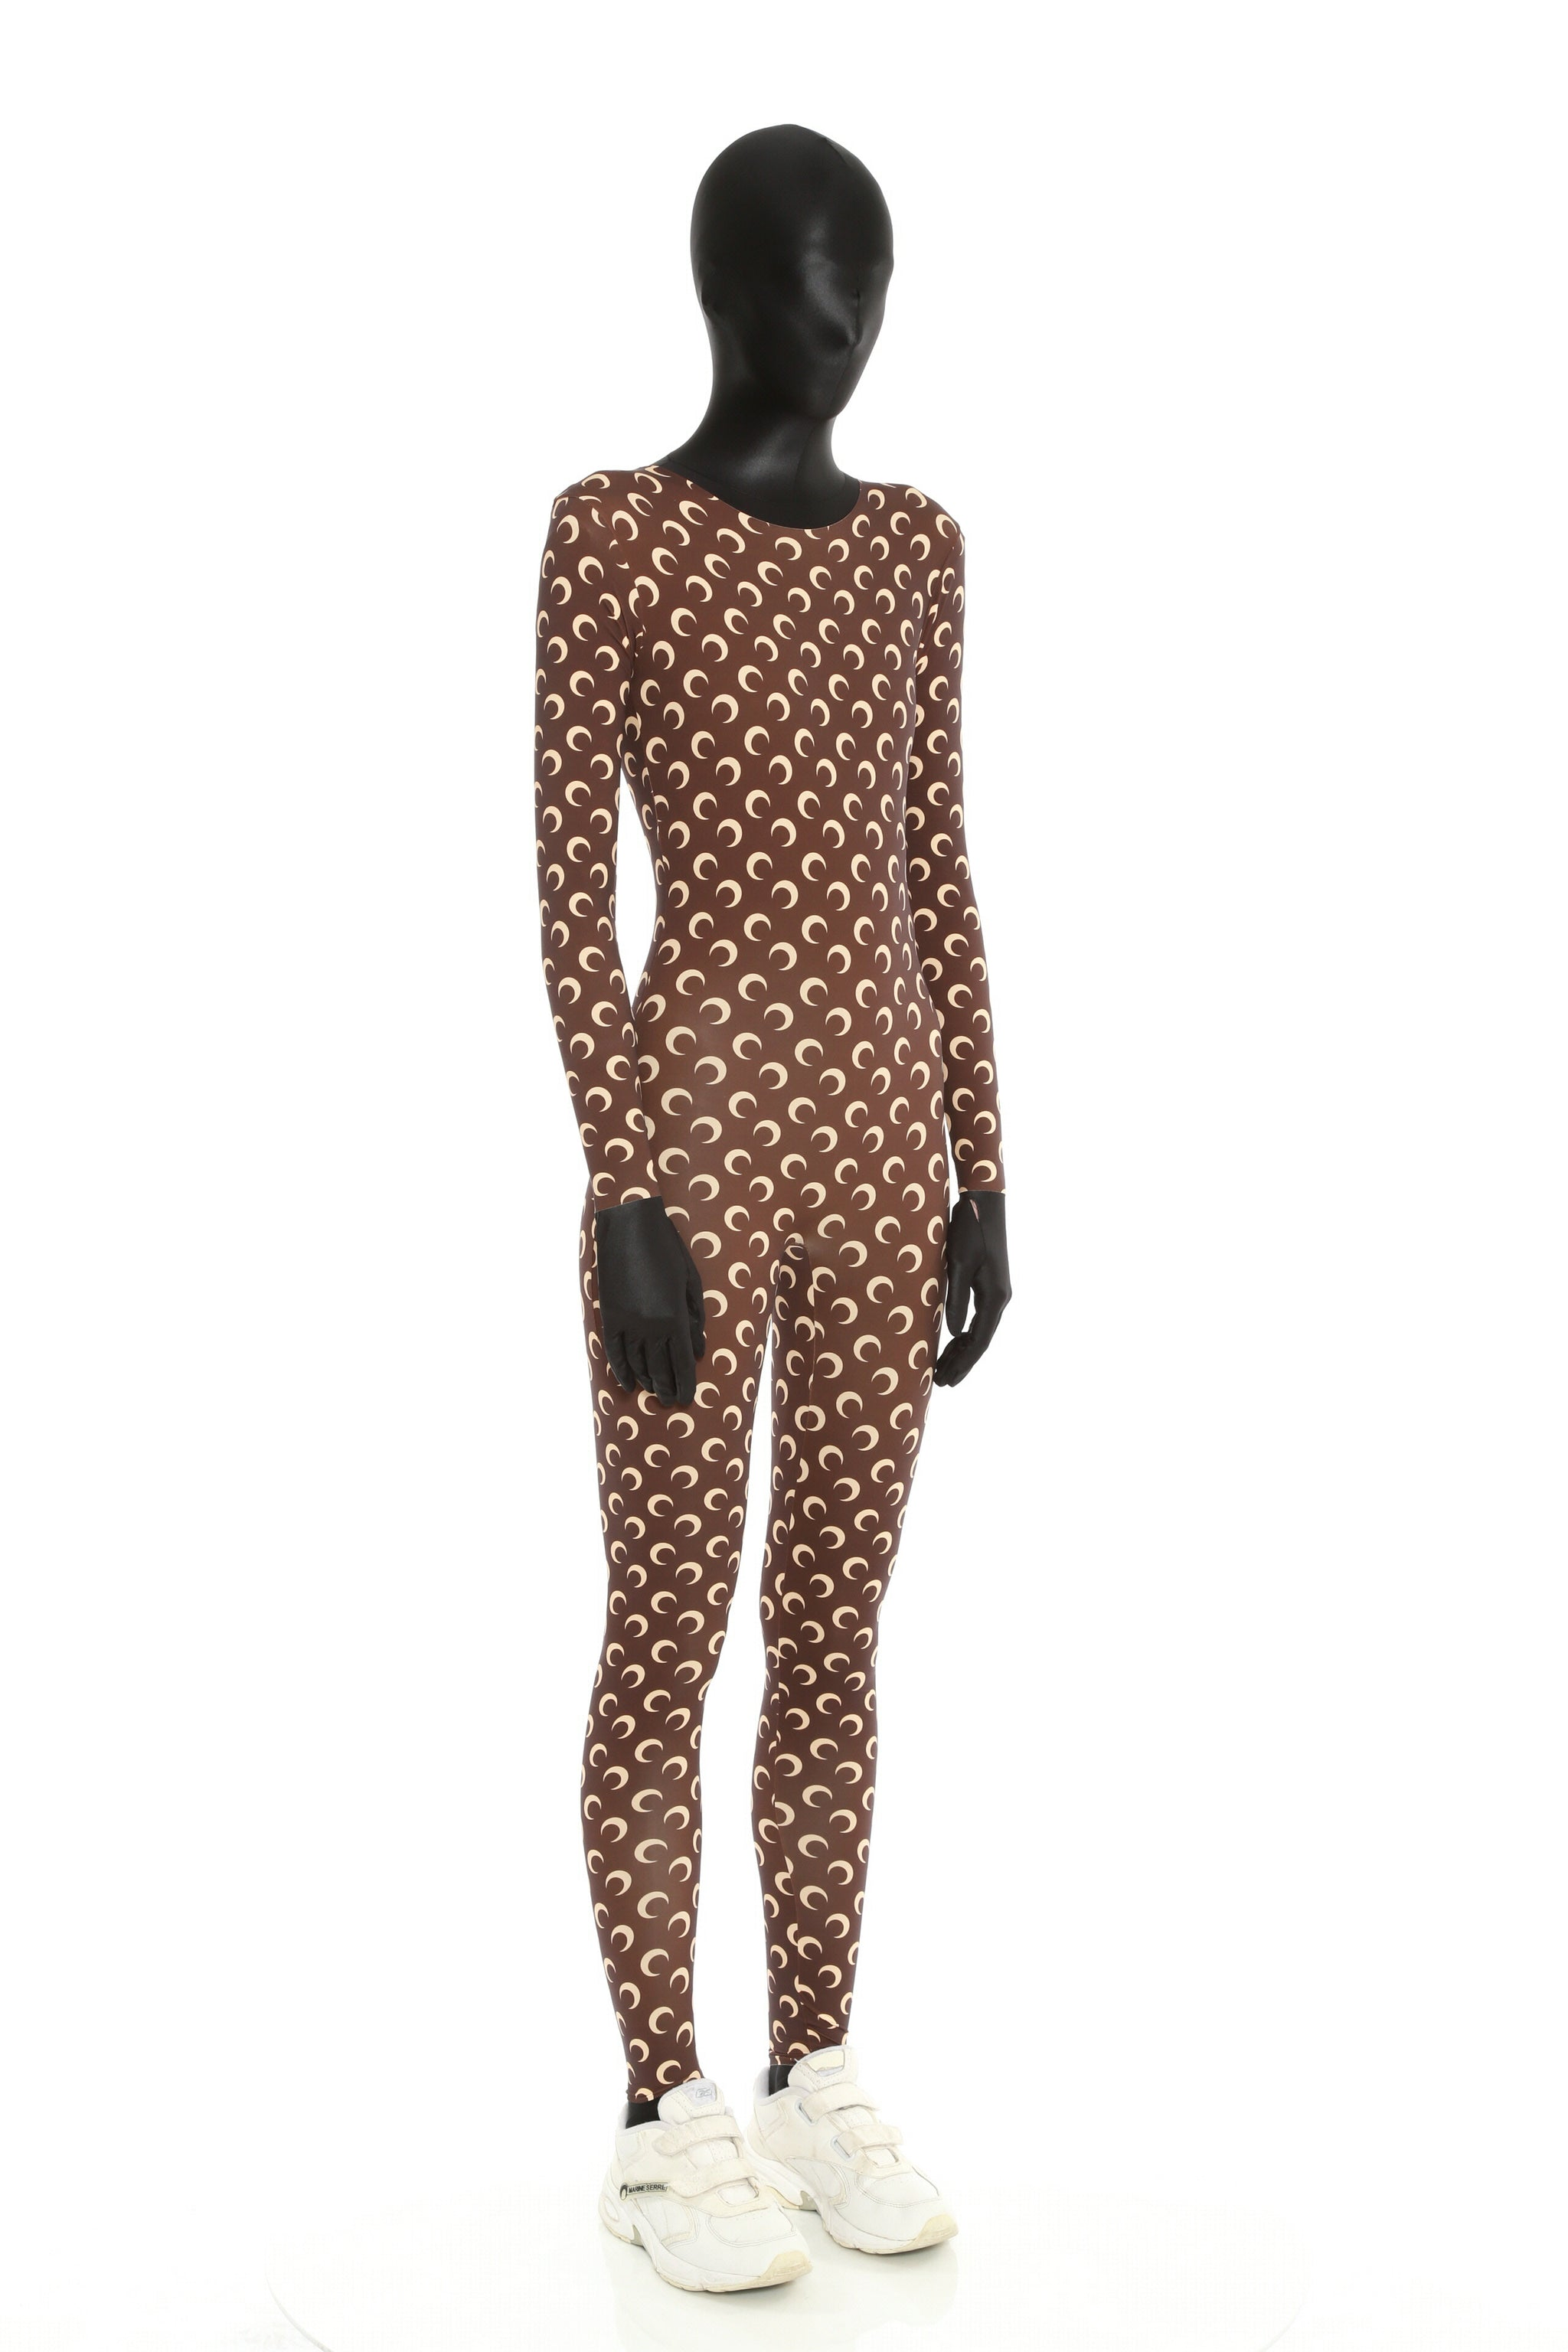 JE07 The Iconic All Over Moon Catsuit Brown